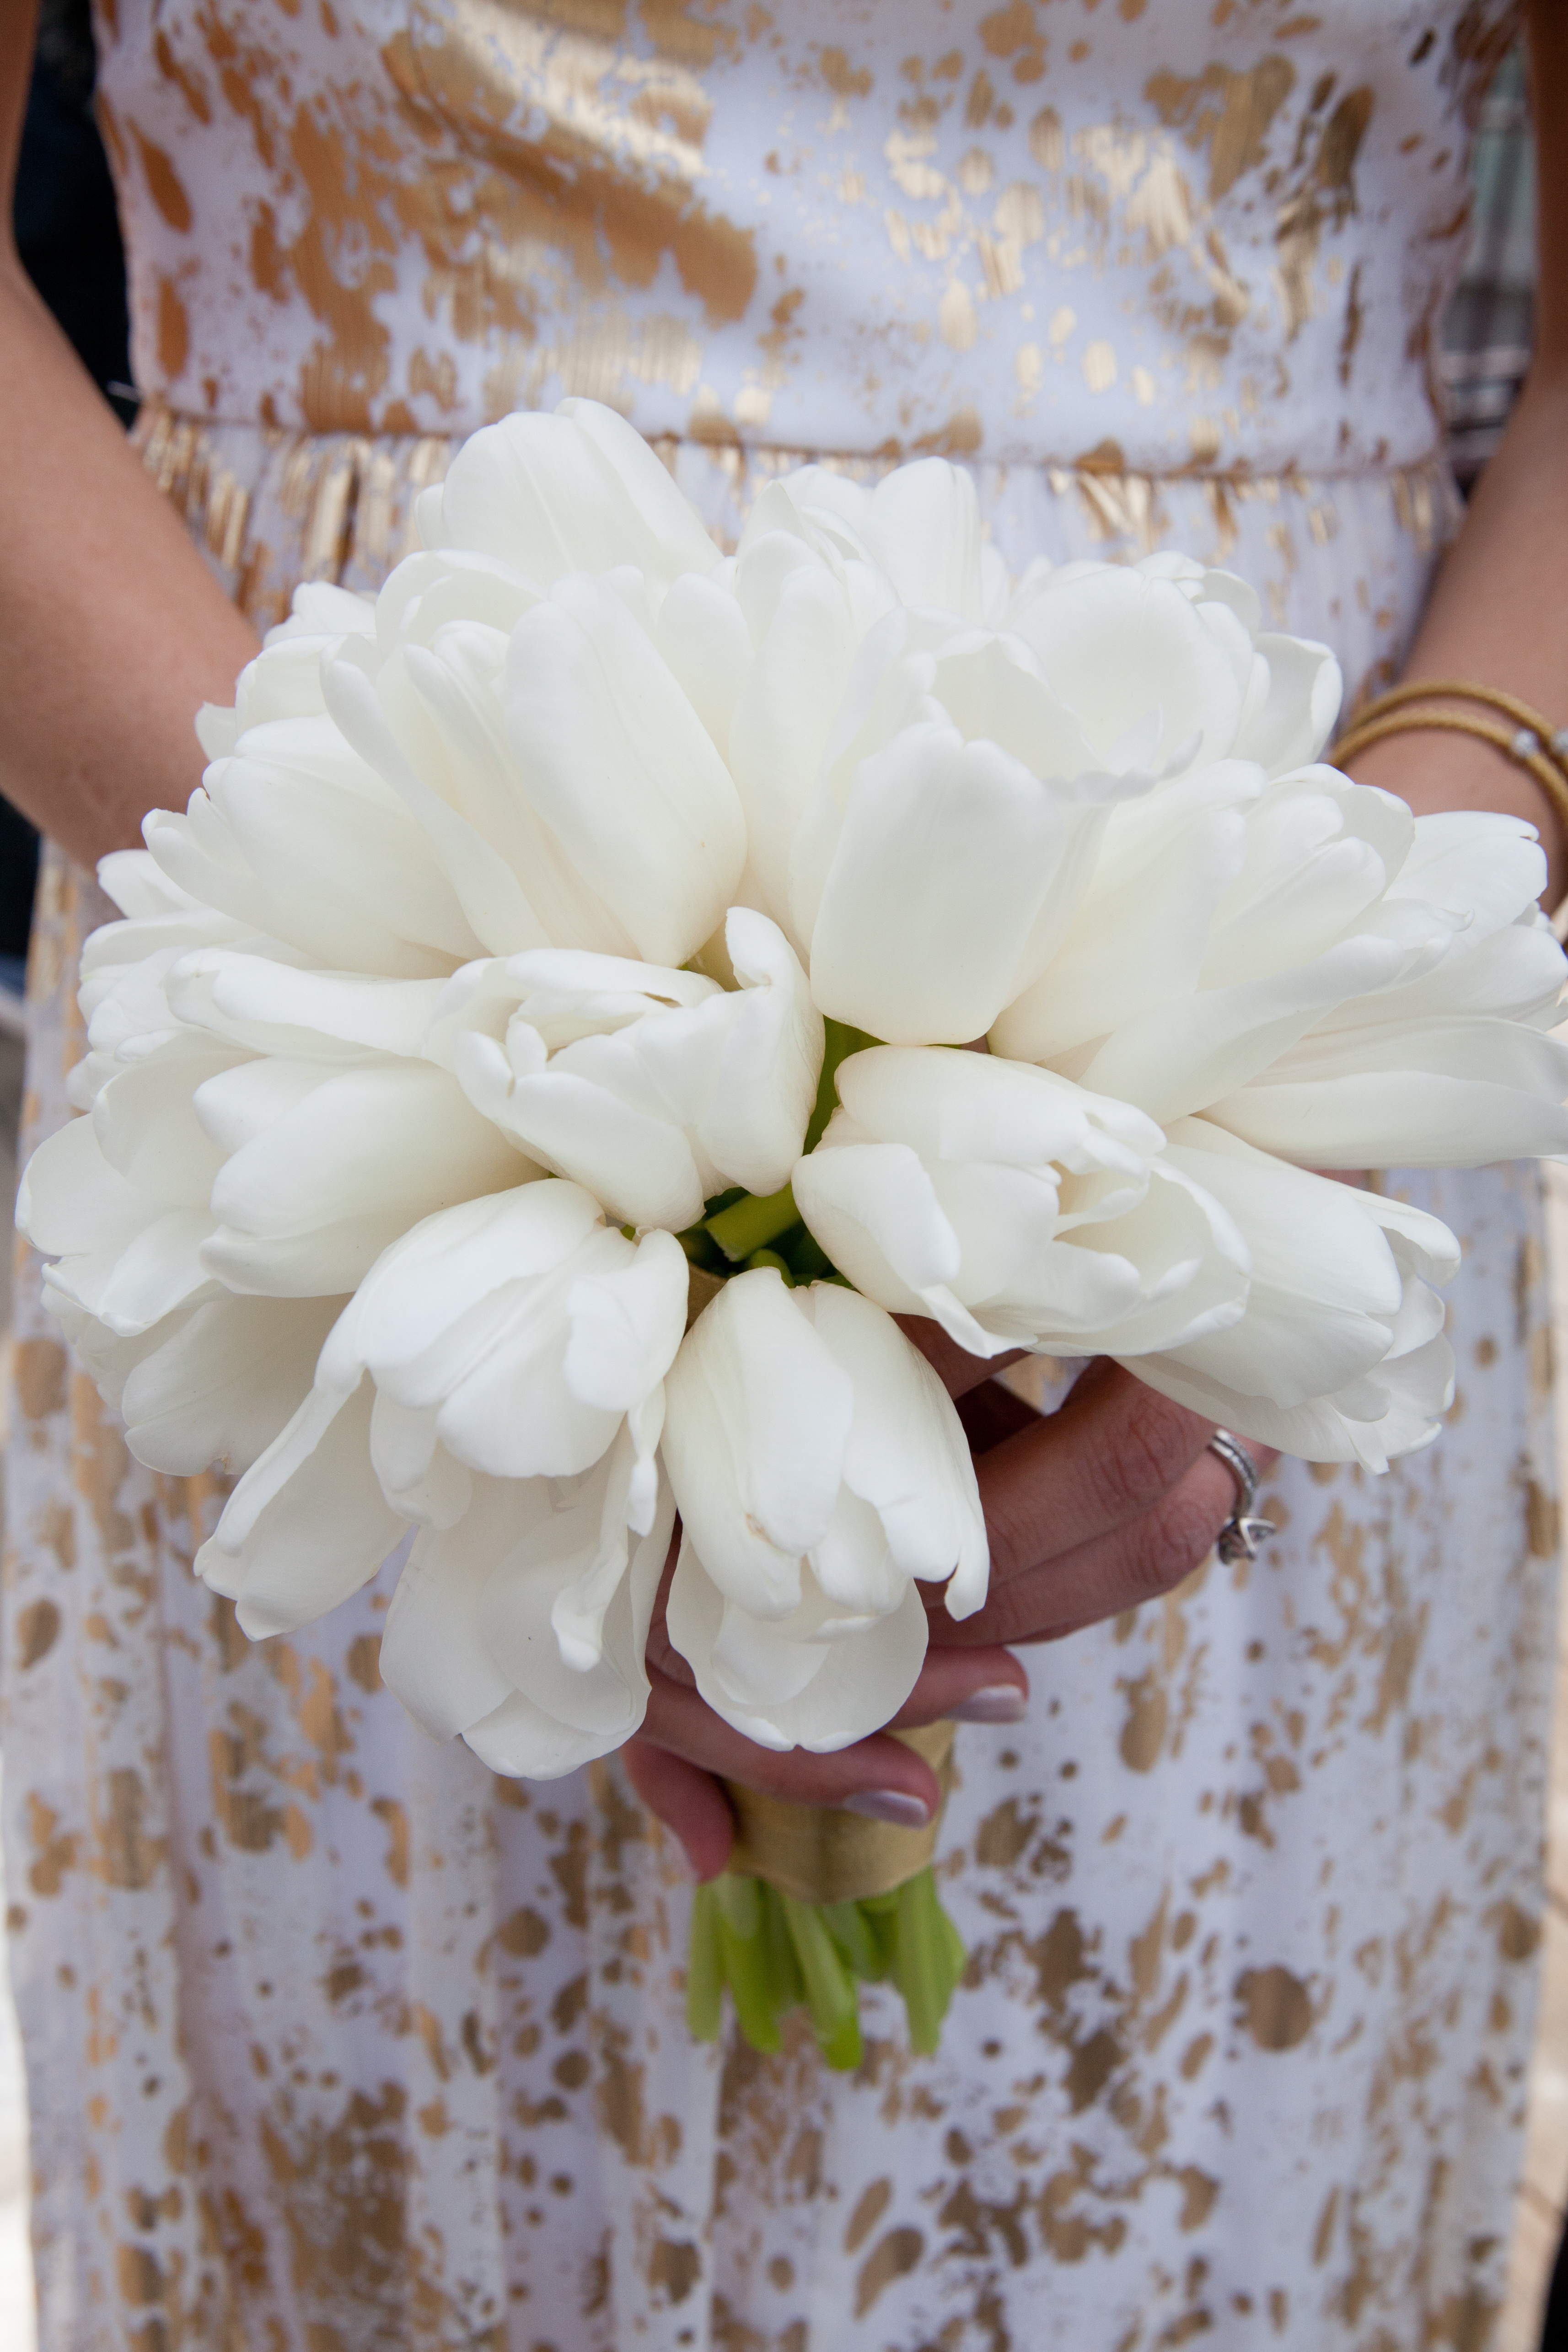 Flowers & Decor, Real Weddings, Wedding Style, ivory, Bridesmaid Bouquets, Spring Weddings, City Real Weddings, Classic Real Weddings, Midwest Real Weddings, Spring Real Weddings, City Weddings, Spring Wedding Flowers & Decor, Tulips